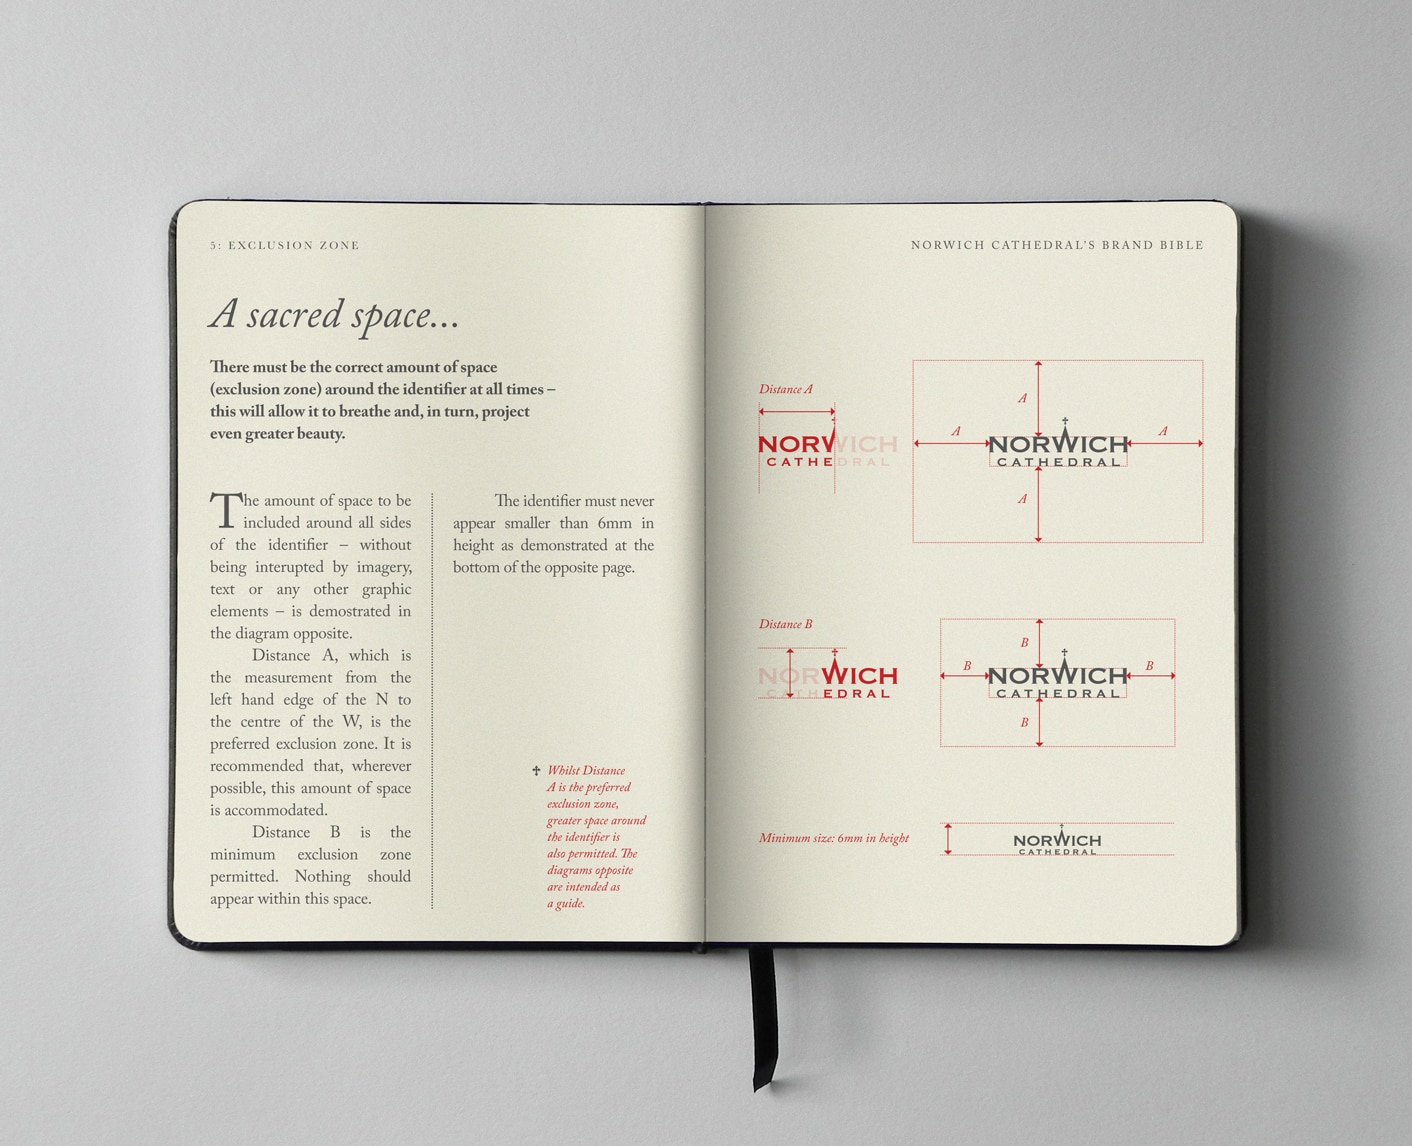 Norwich Cathedral brand guidelines